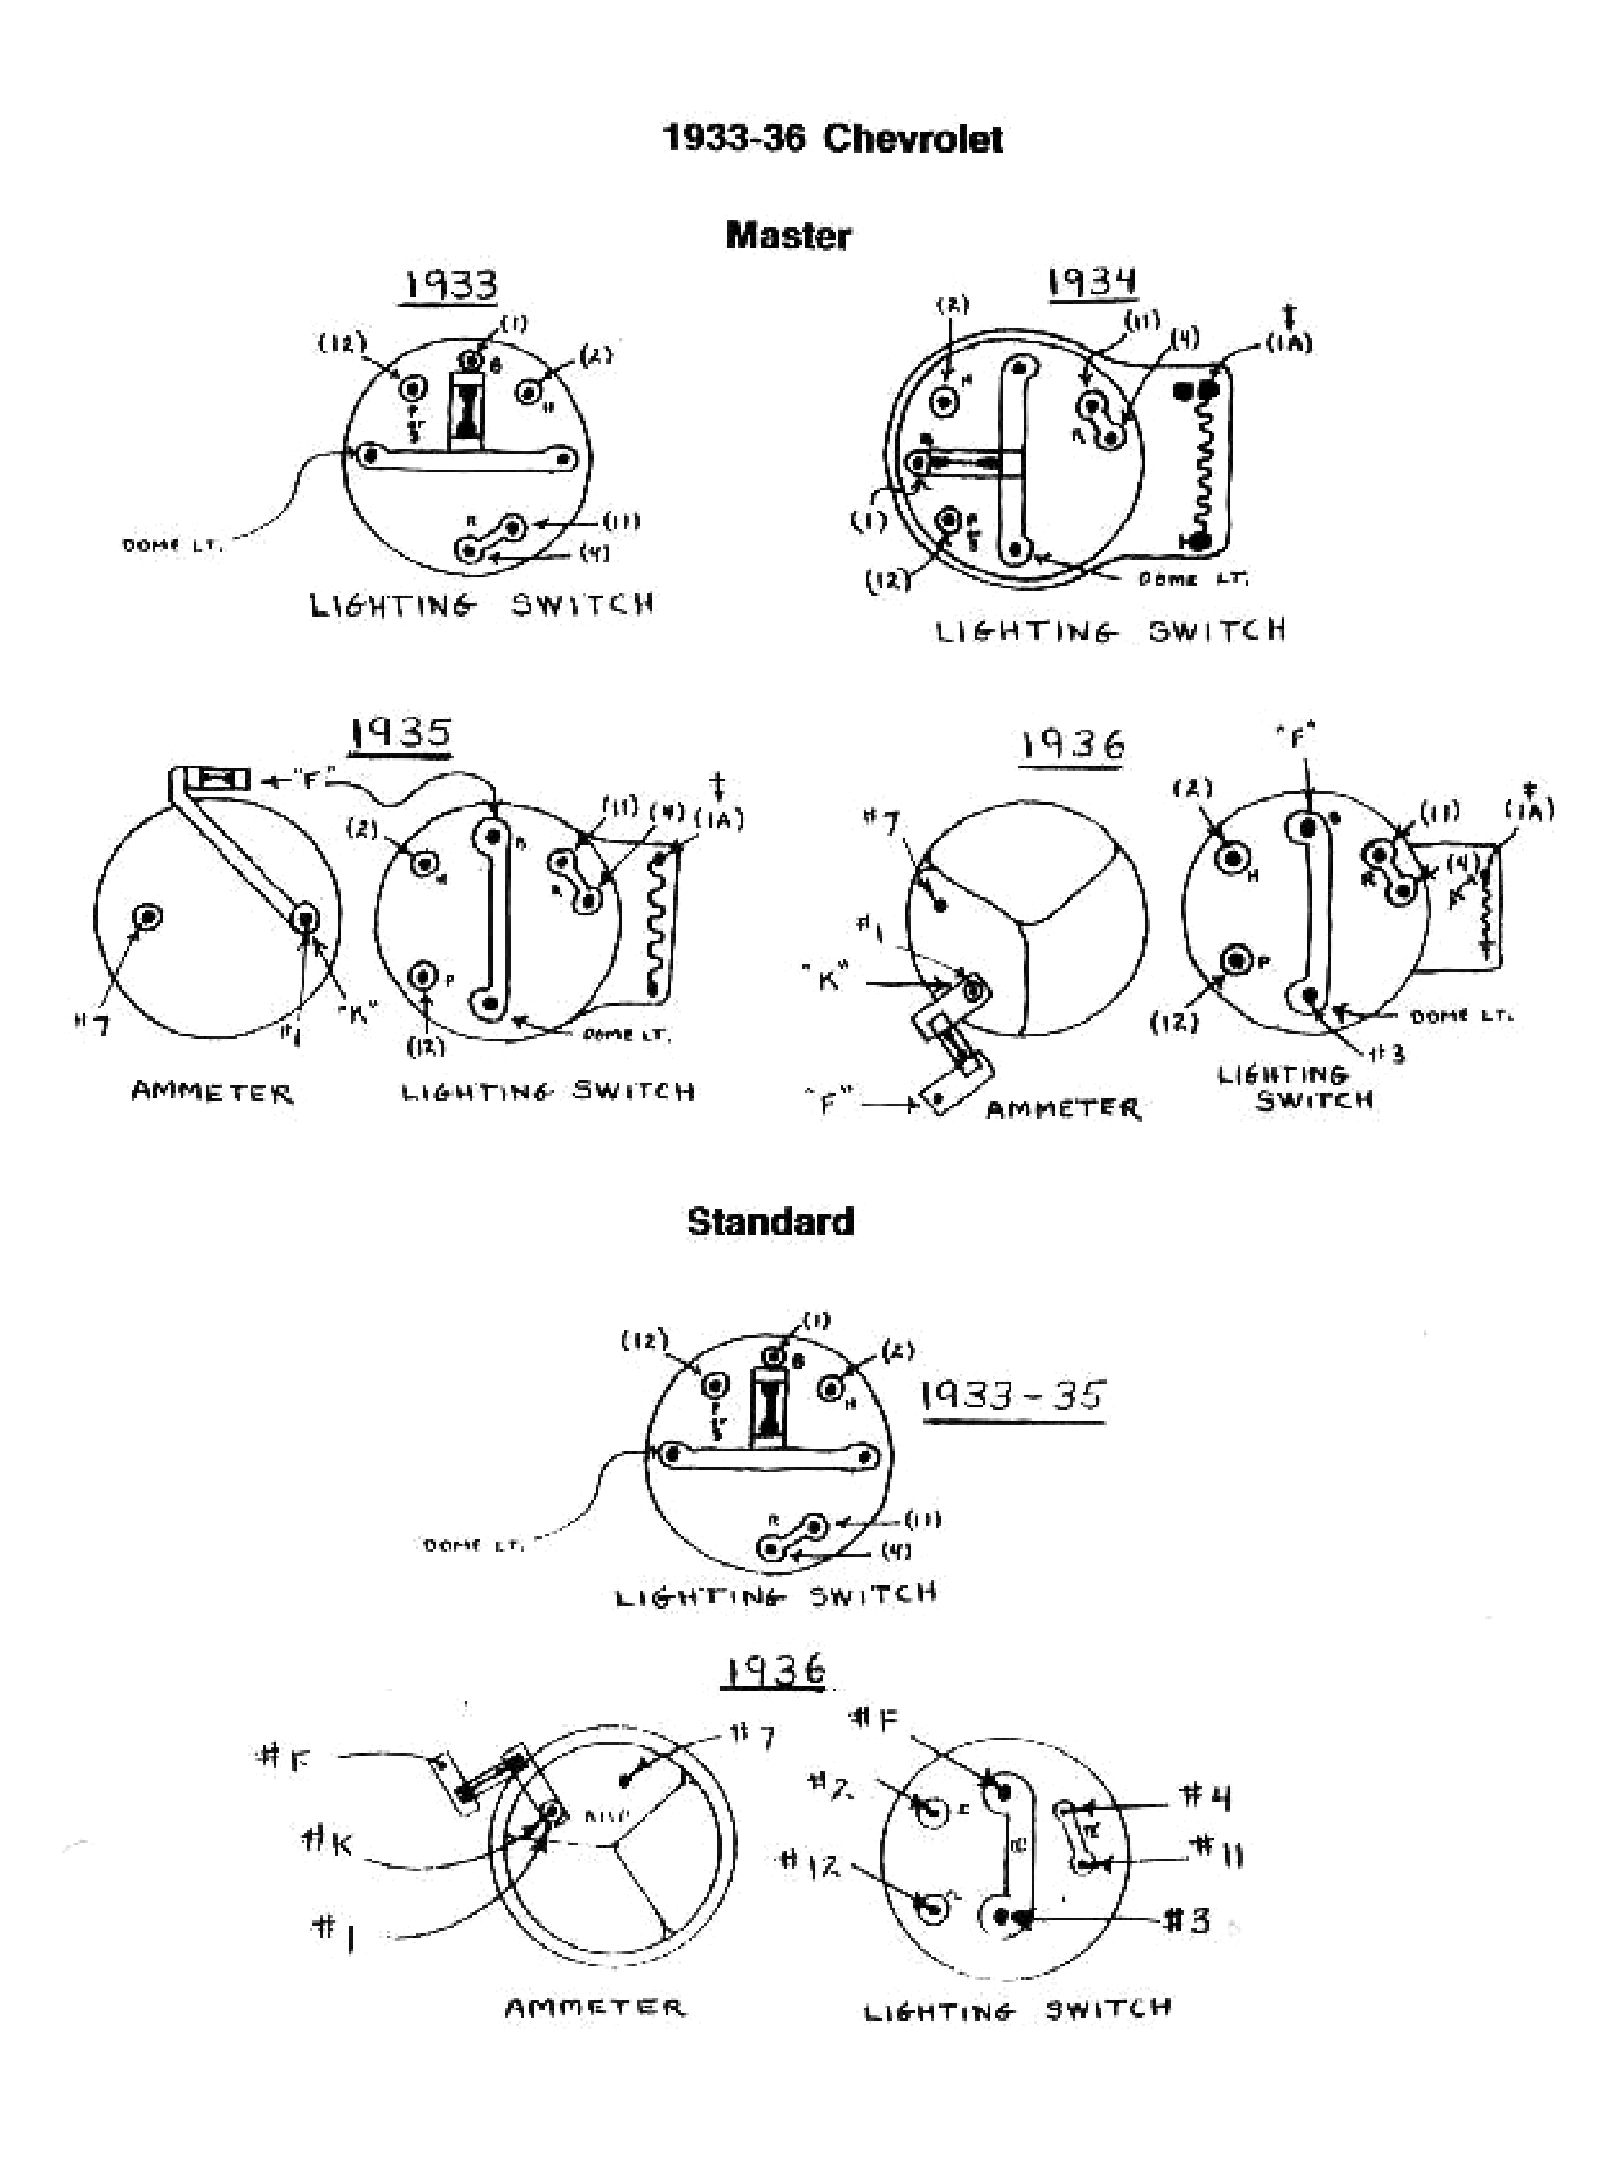 51 Chevy Bel Air Wiring Diagram. Chevy. Wiring Diagram Images